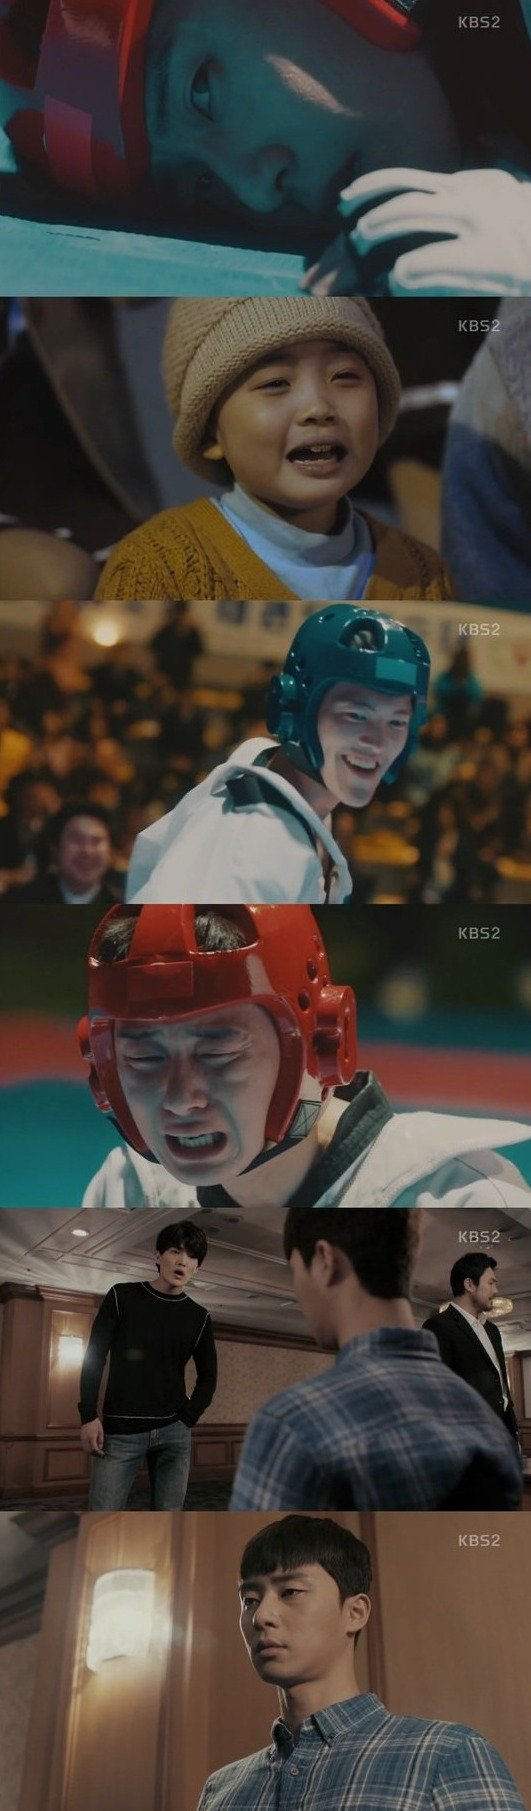 [Spoiler] Added episode 4 captures for the Korean drama 'Fight My Way'